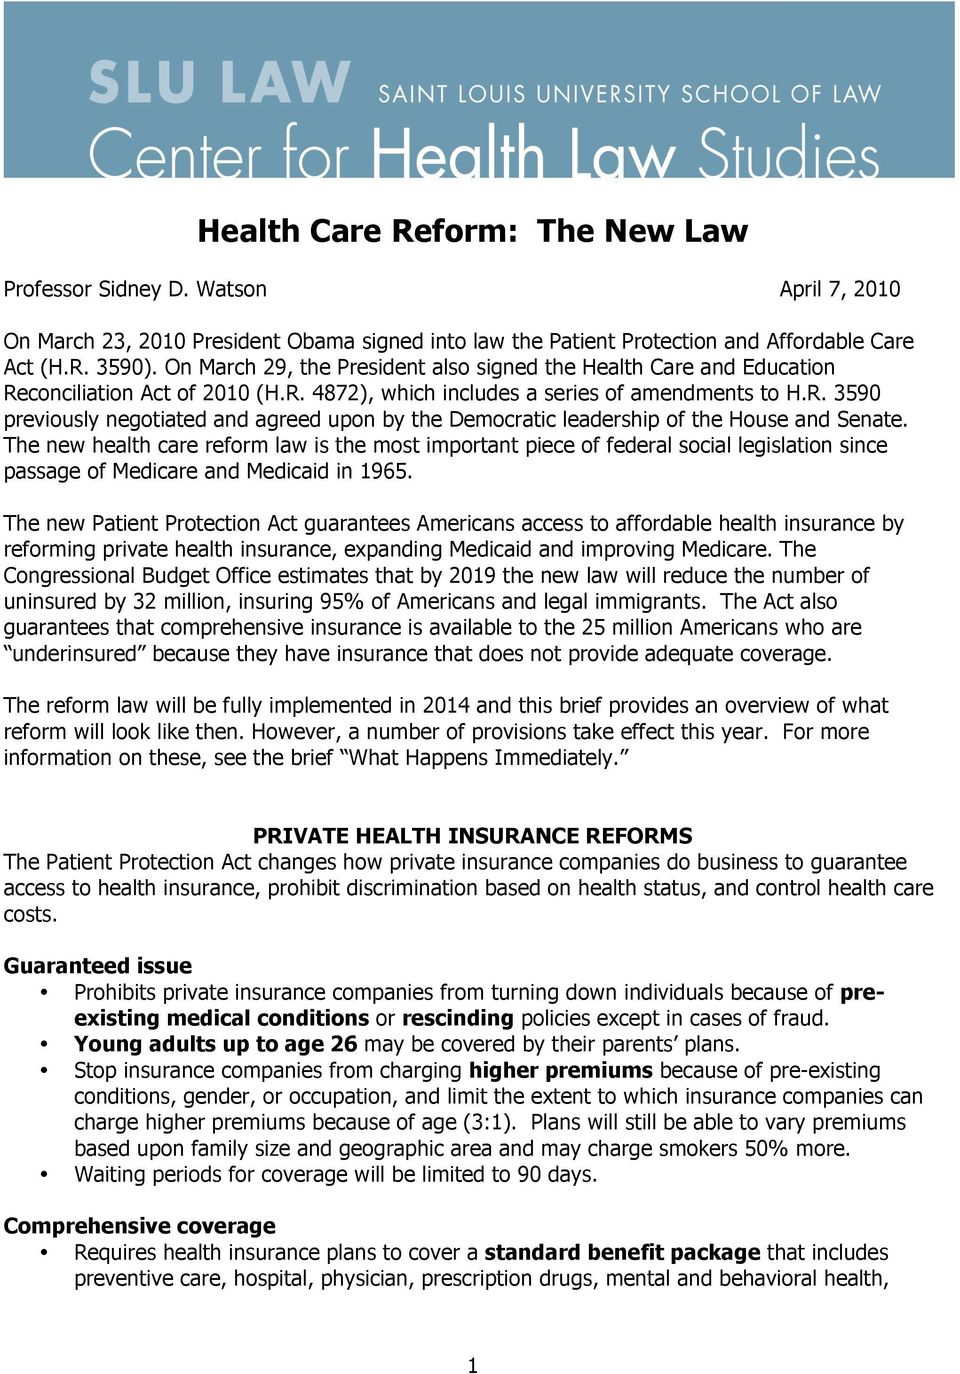 The new health care refrm law is the mst imprtant piece f federal scial legislatin since passage f Medicare and Medicaid in 1965.